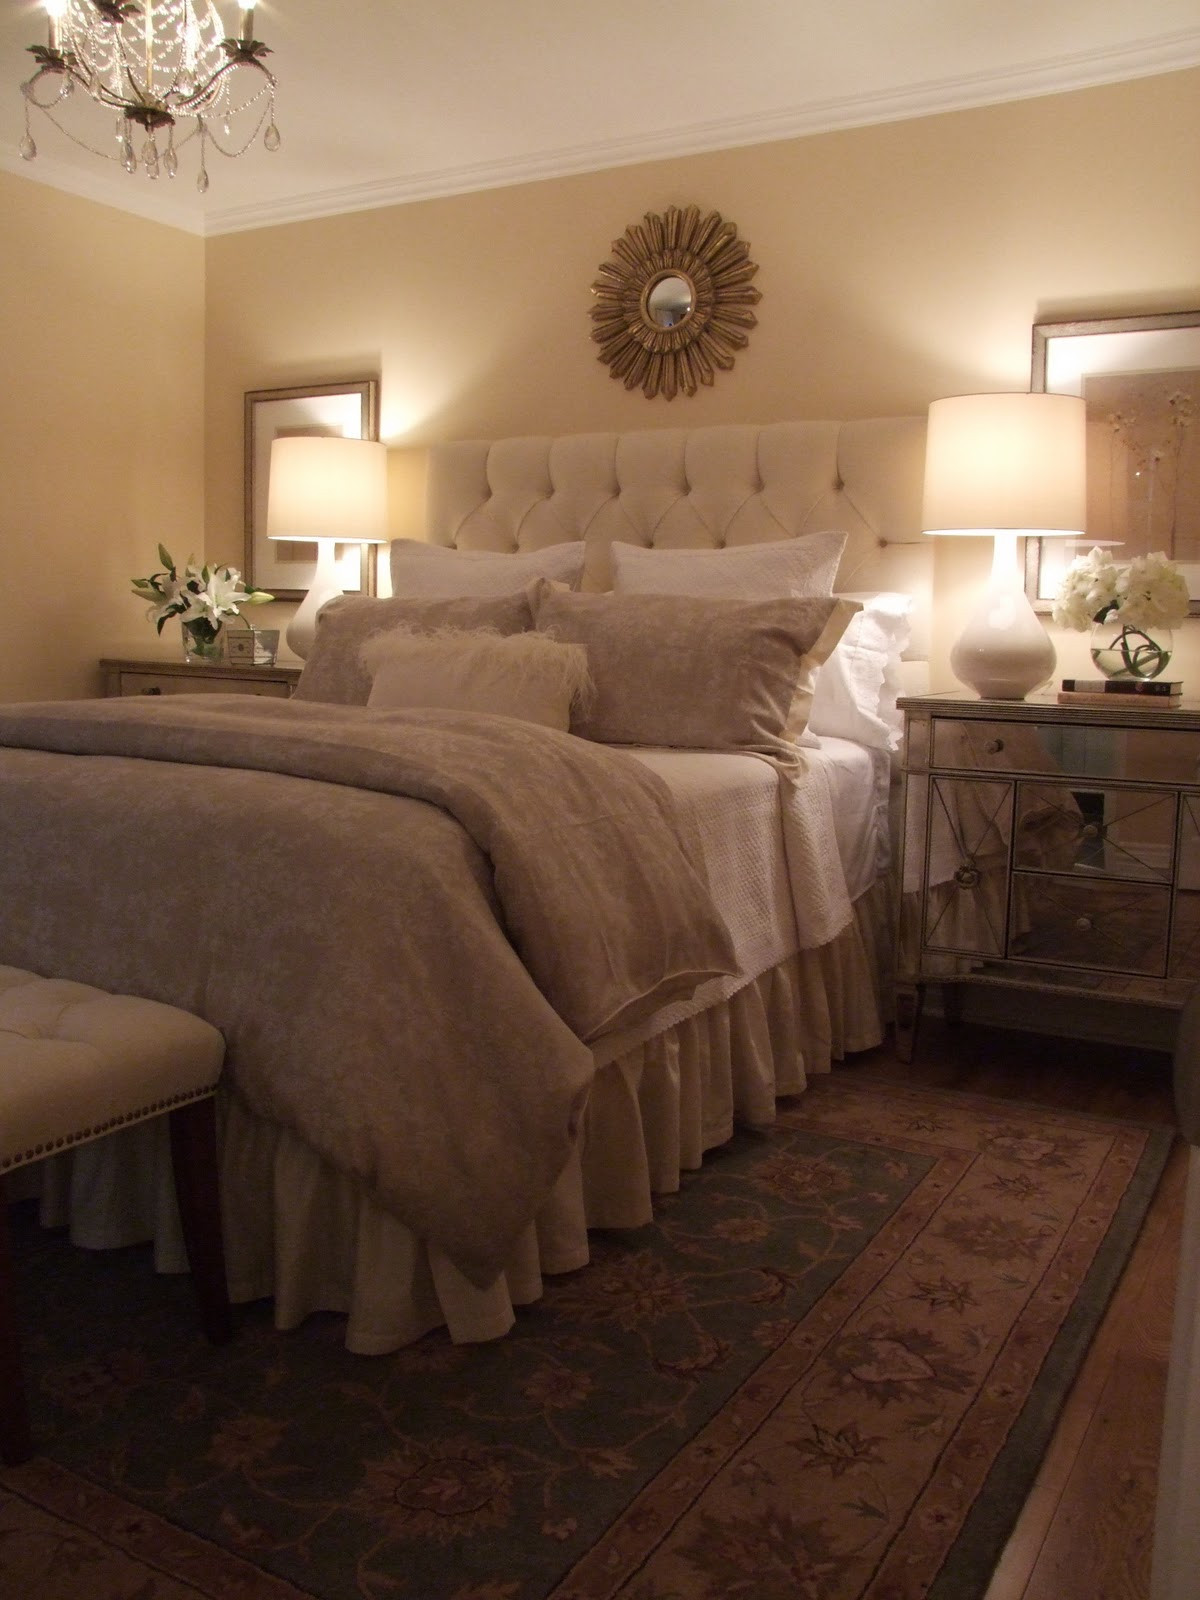 Best ideas about Master Bedroom Decor . Save or Pin CREED Master Retreat 70 s Sidesplit Now.